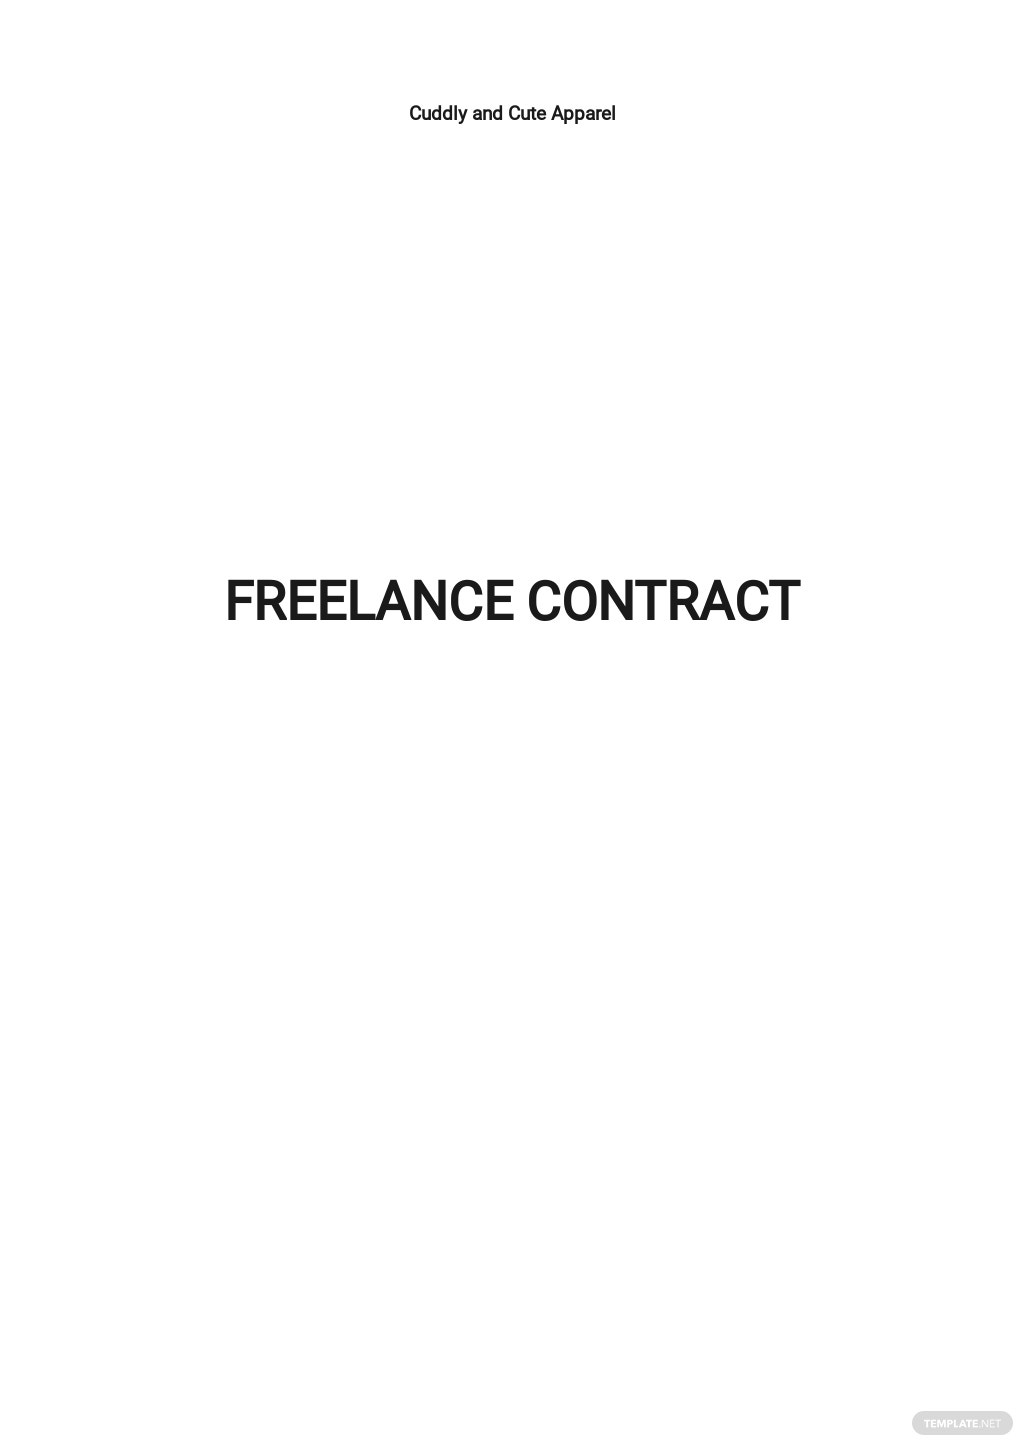 Simple Freelance Contract Template.jpe